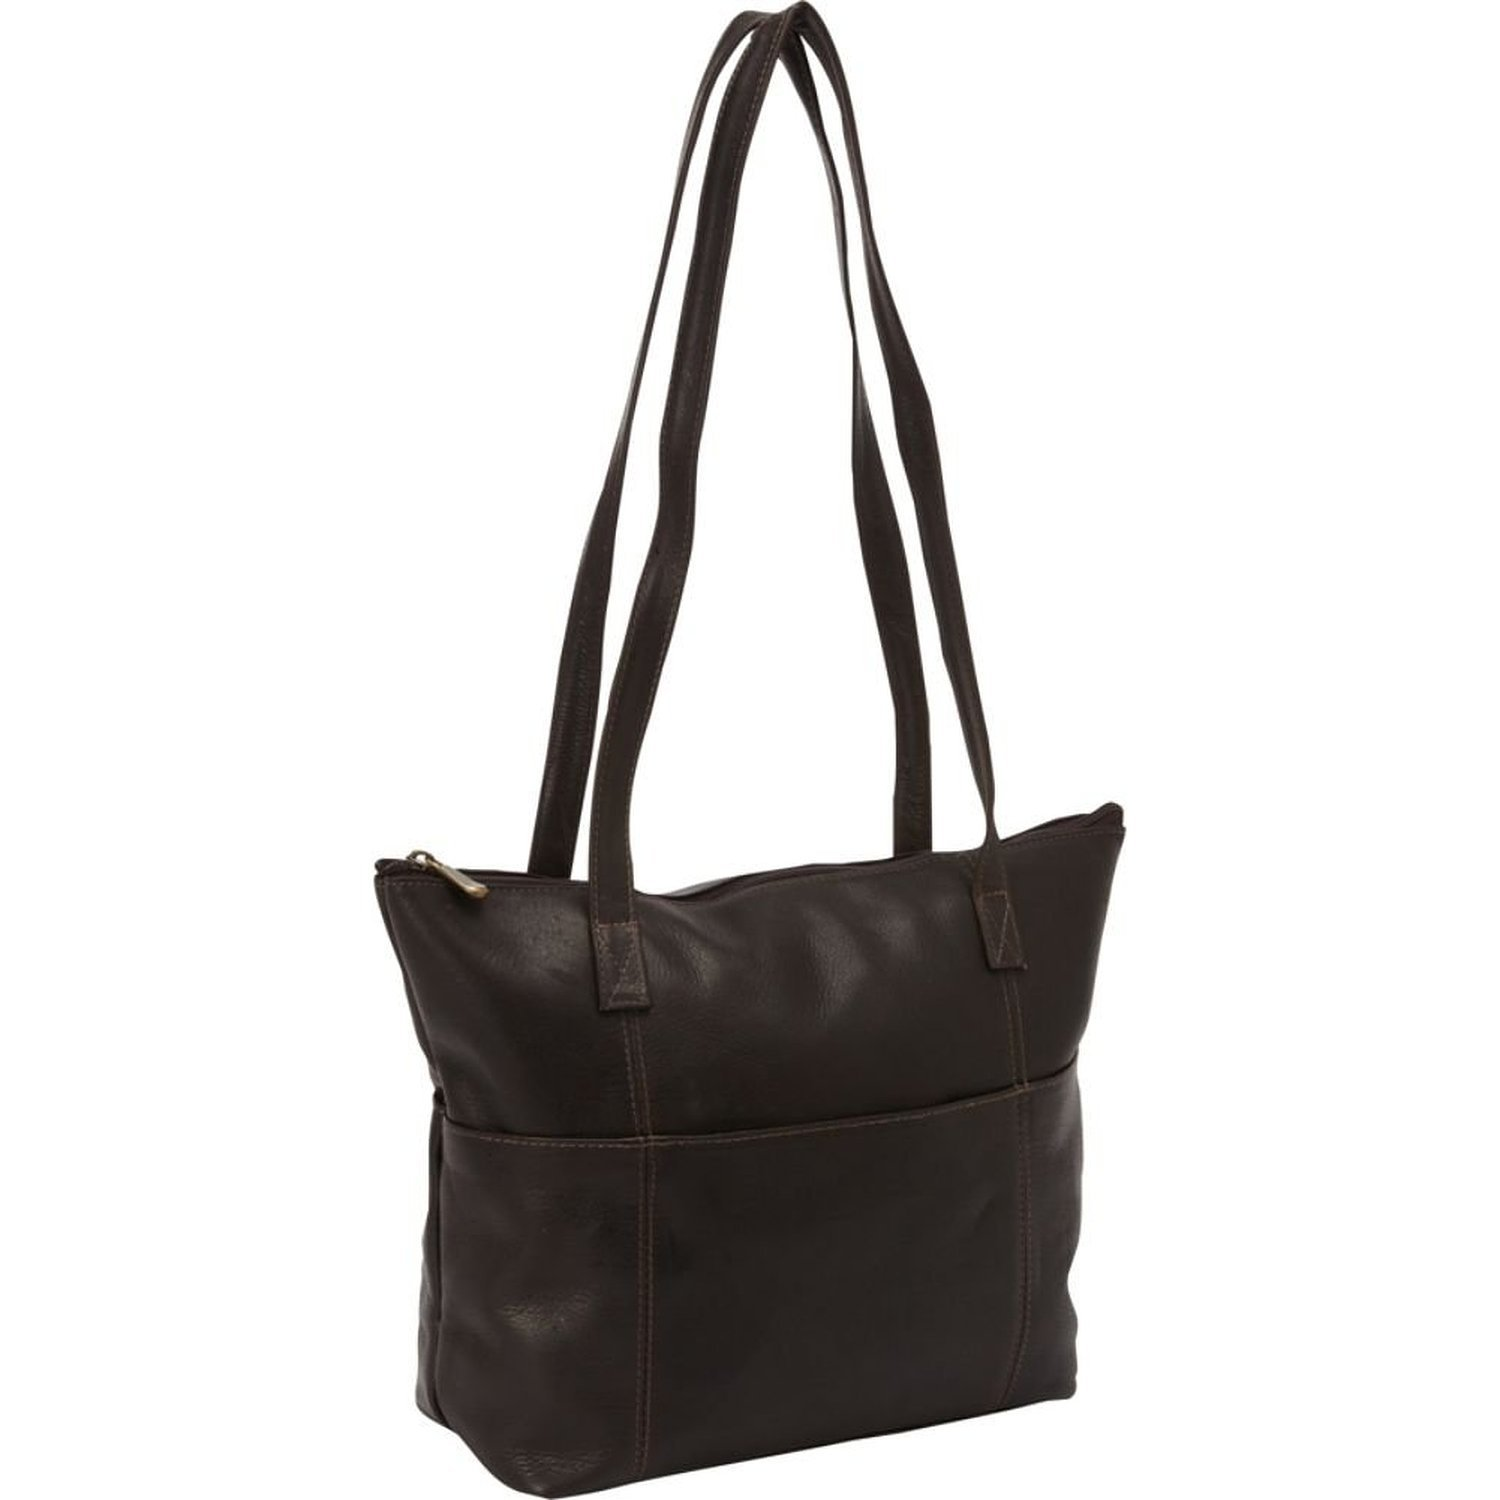 David King Leather Top Zip Shopping Tote in Cafe